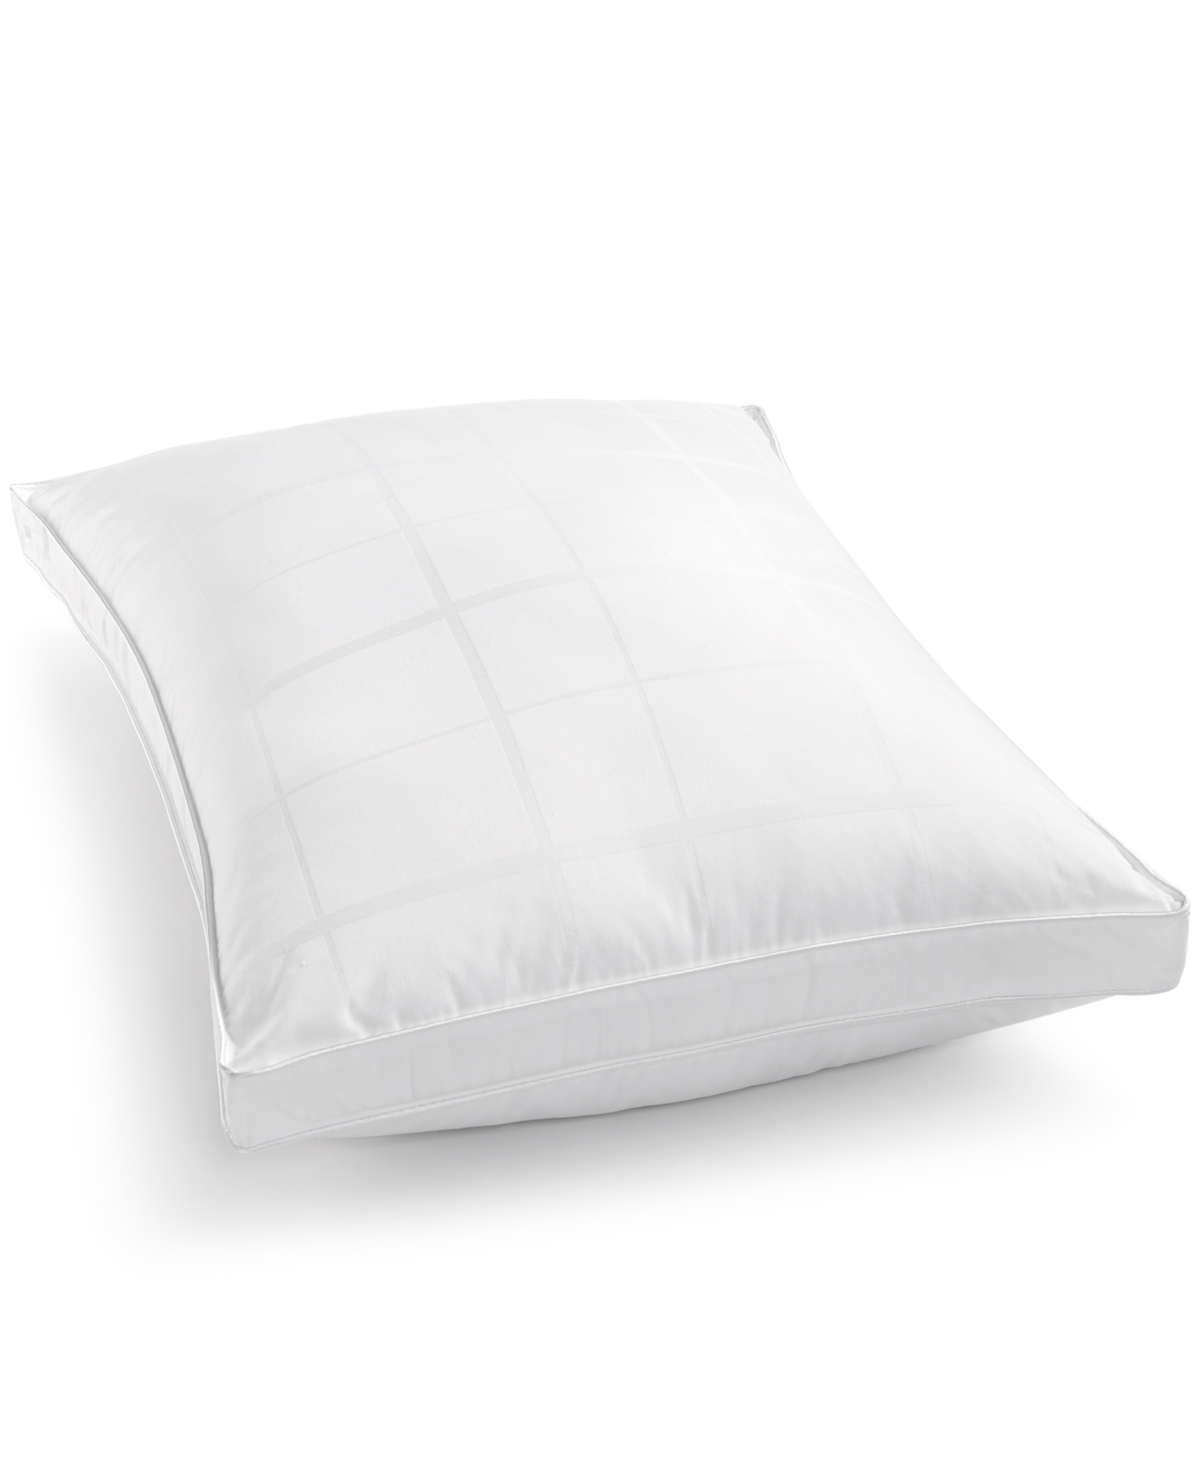 Martha Stewart Collection Feels Like Down King Medium Pillow, Created for Macy's Bedding